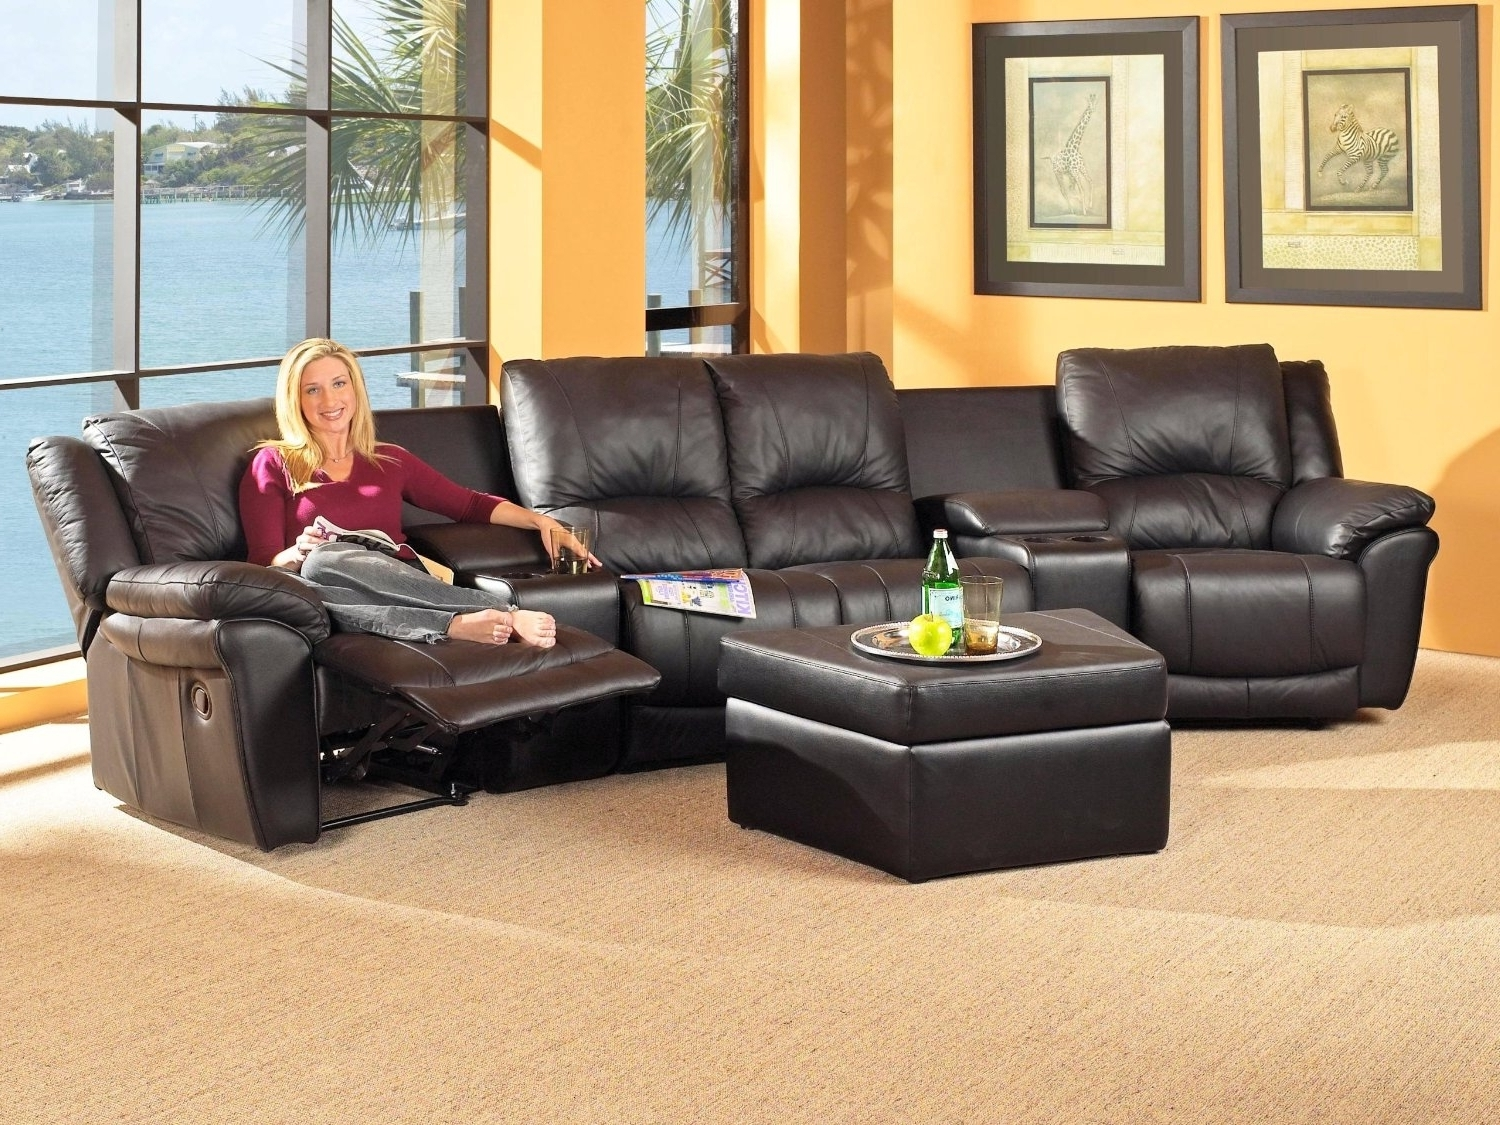 2018 Rochester Ny Sectional Sofas For Collection Sectional Sofas Rochester Ny – Mediasupload (View 1 of 20)